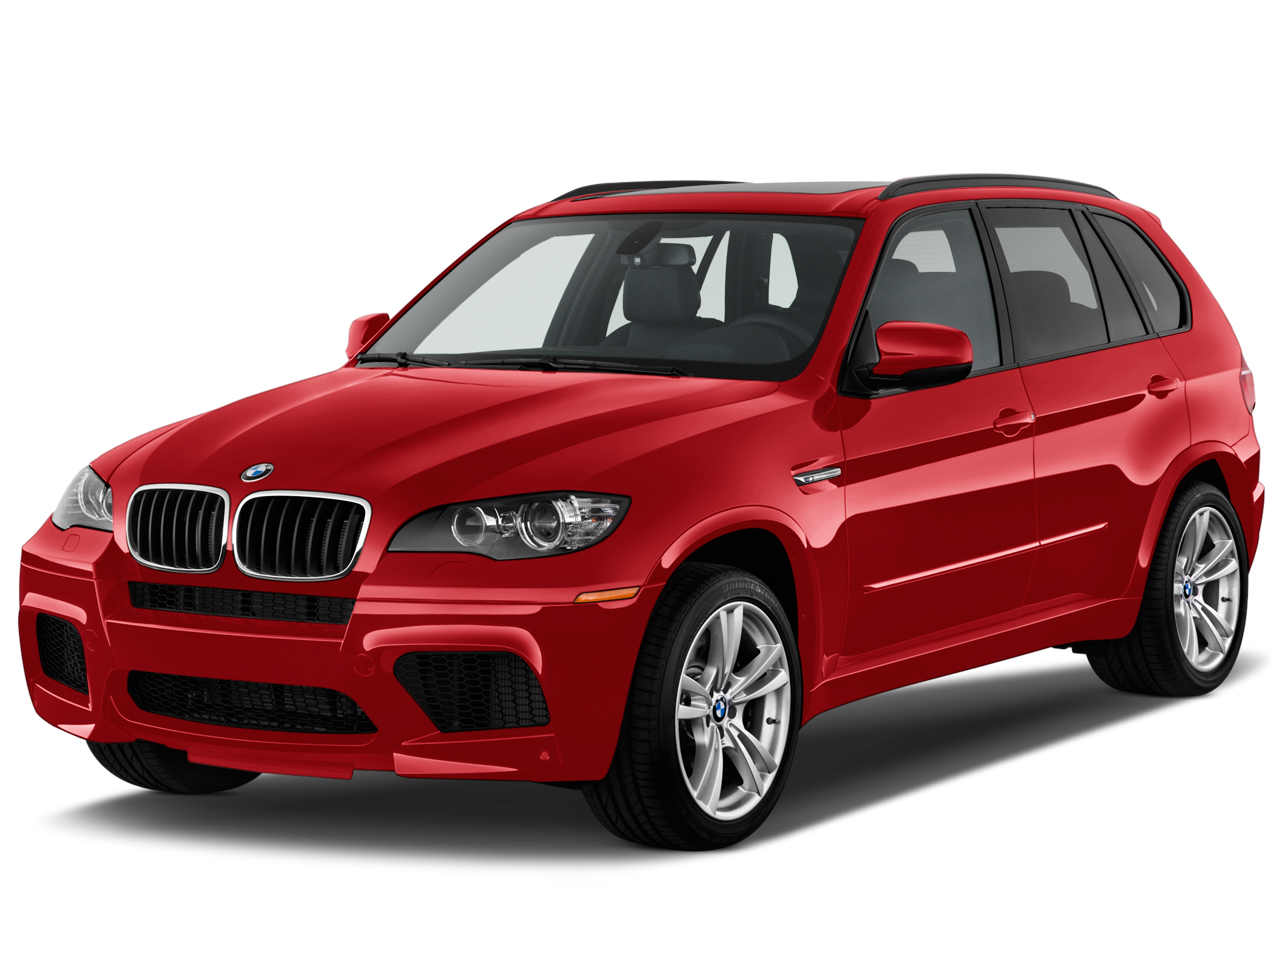 red X5 BMW PNG image, free download